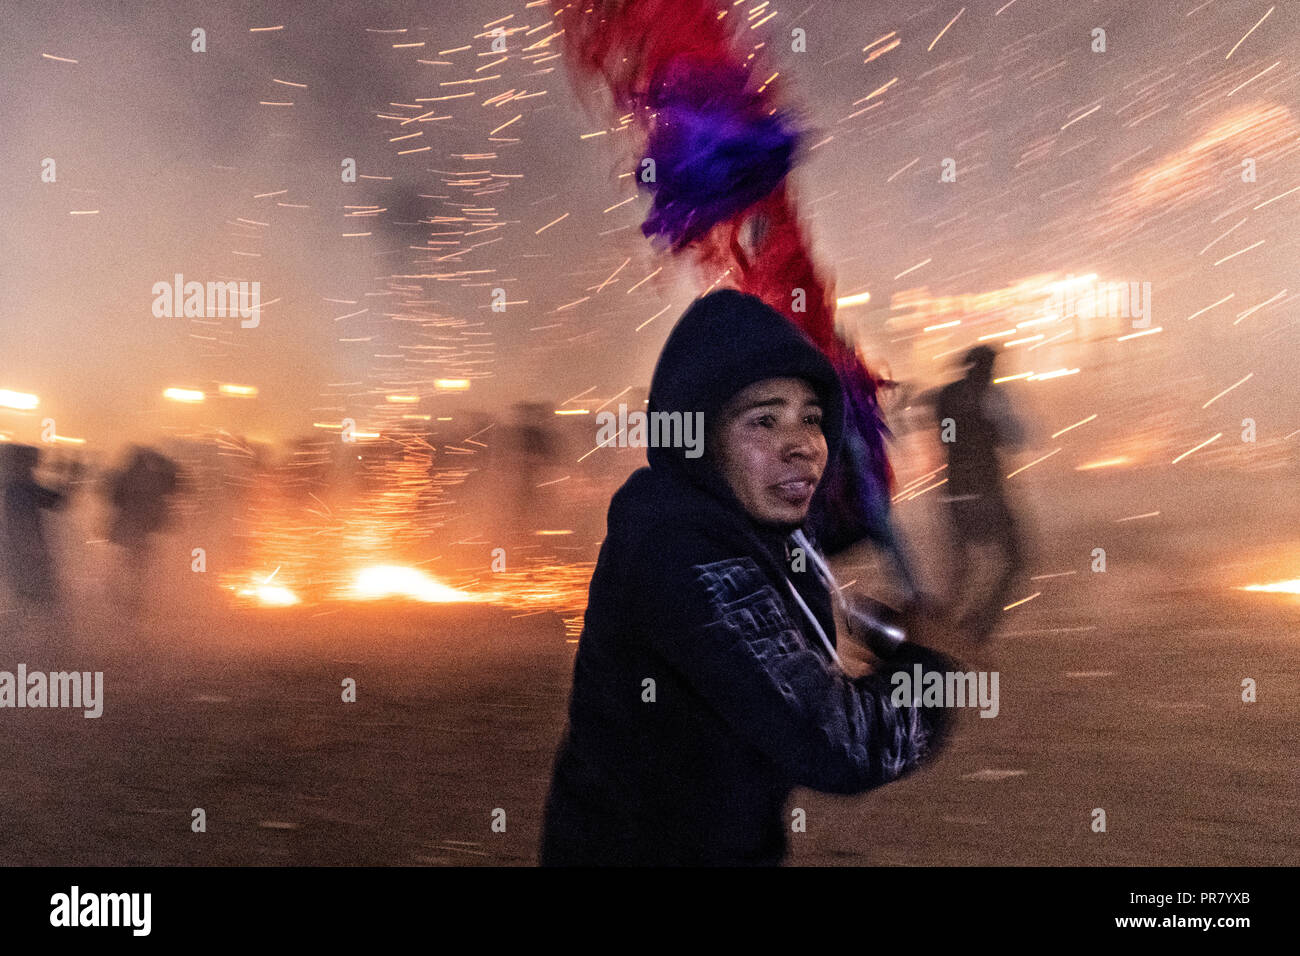 San Miguel de Allende, Mexico. 29th Sept 2018. A Mexican man runs for cover as he is barraged by pyrotechnic sky rockets during the Alborada festival September 29, 2018 in San Miguel de Allende, Mexico. The unusual festival celebrates the cities patron saint with a two hour-long firework battle at 4am representing the struggle between Saint Michael and Lucifer. Credit: Planetpix/Alamy Live News - Stock Image